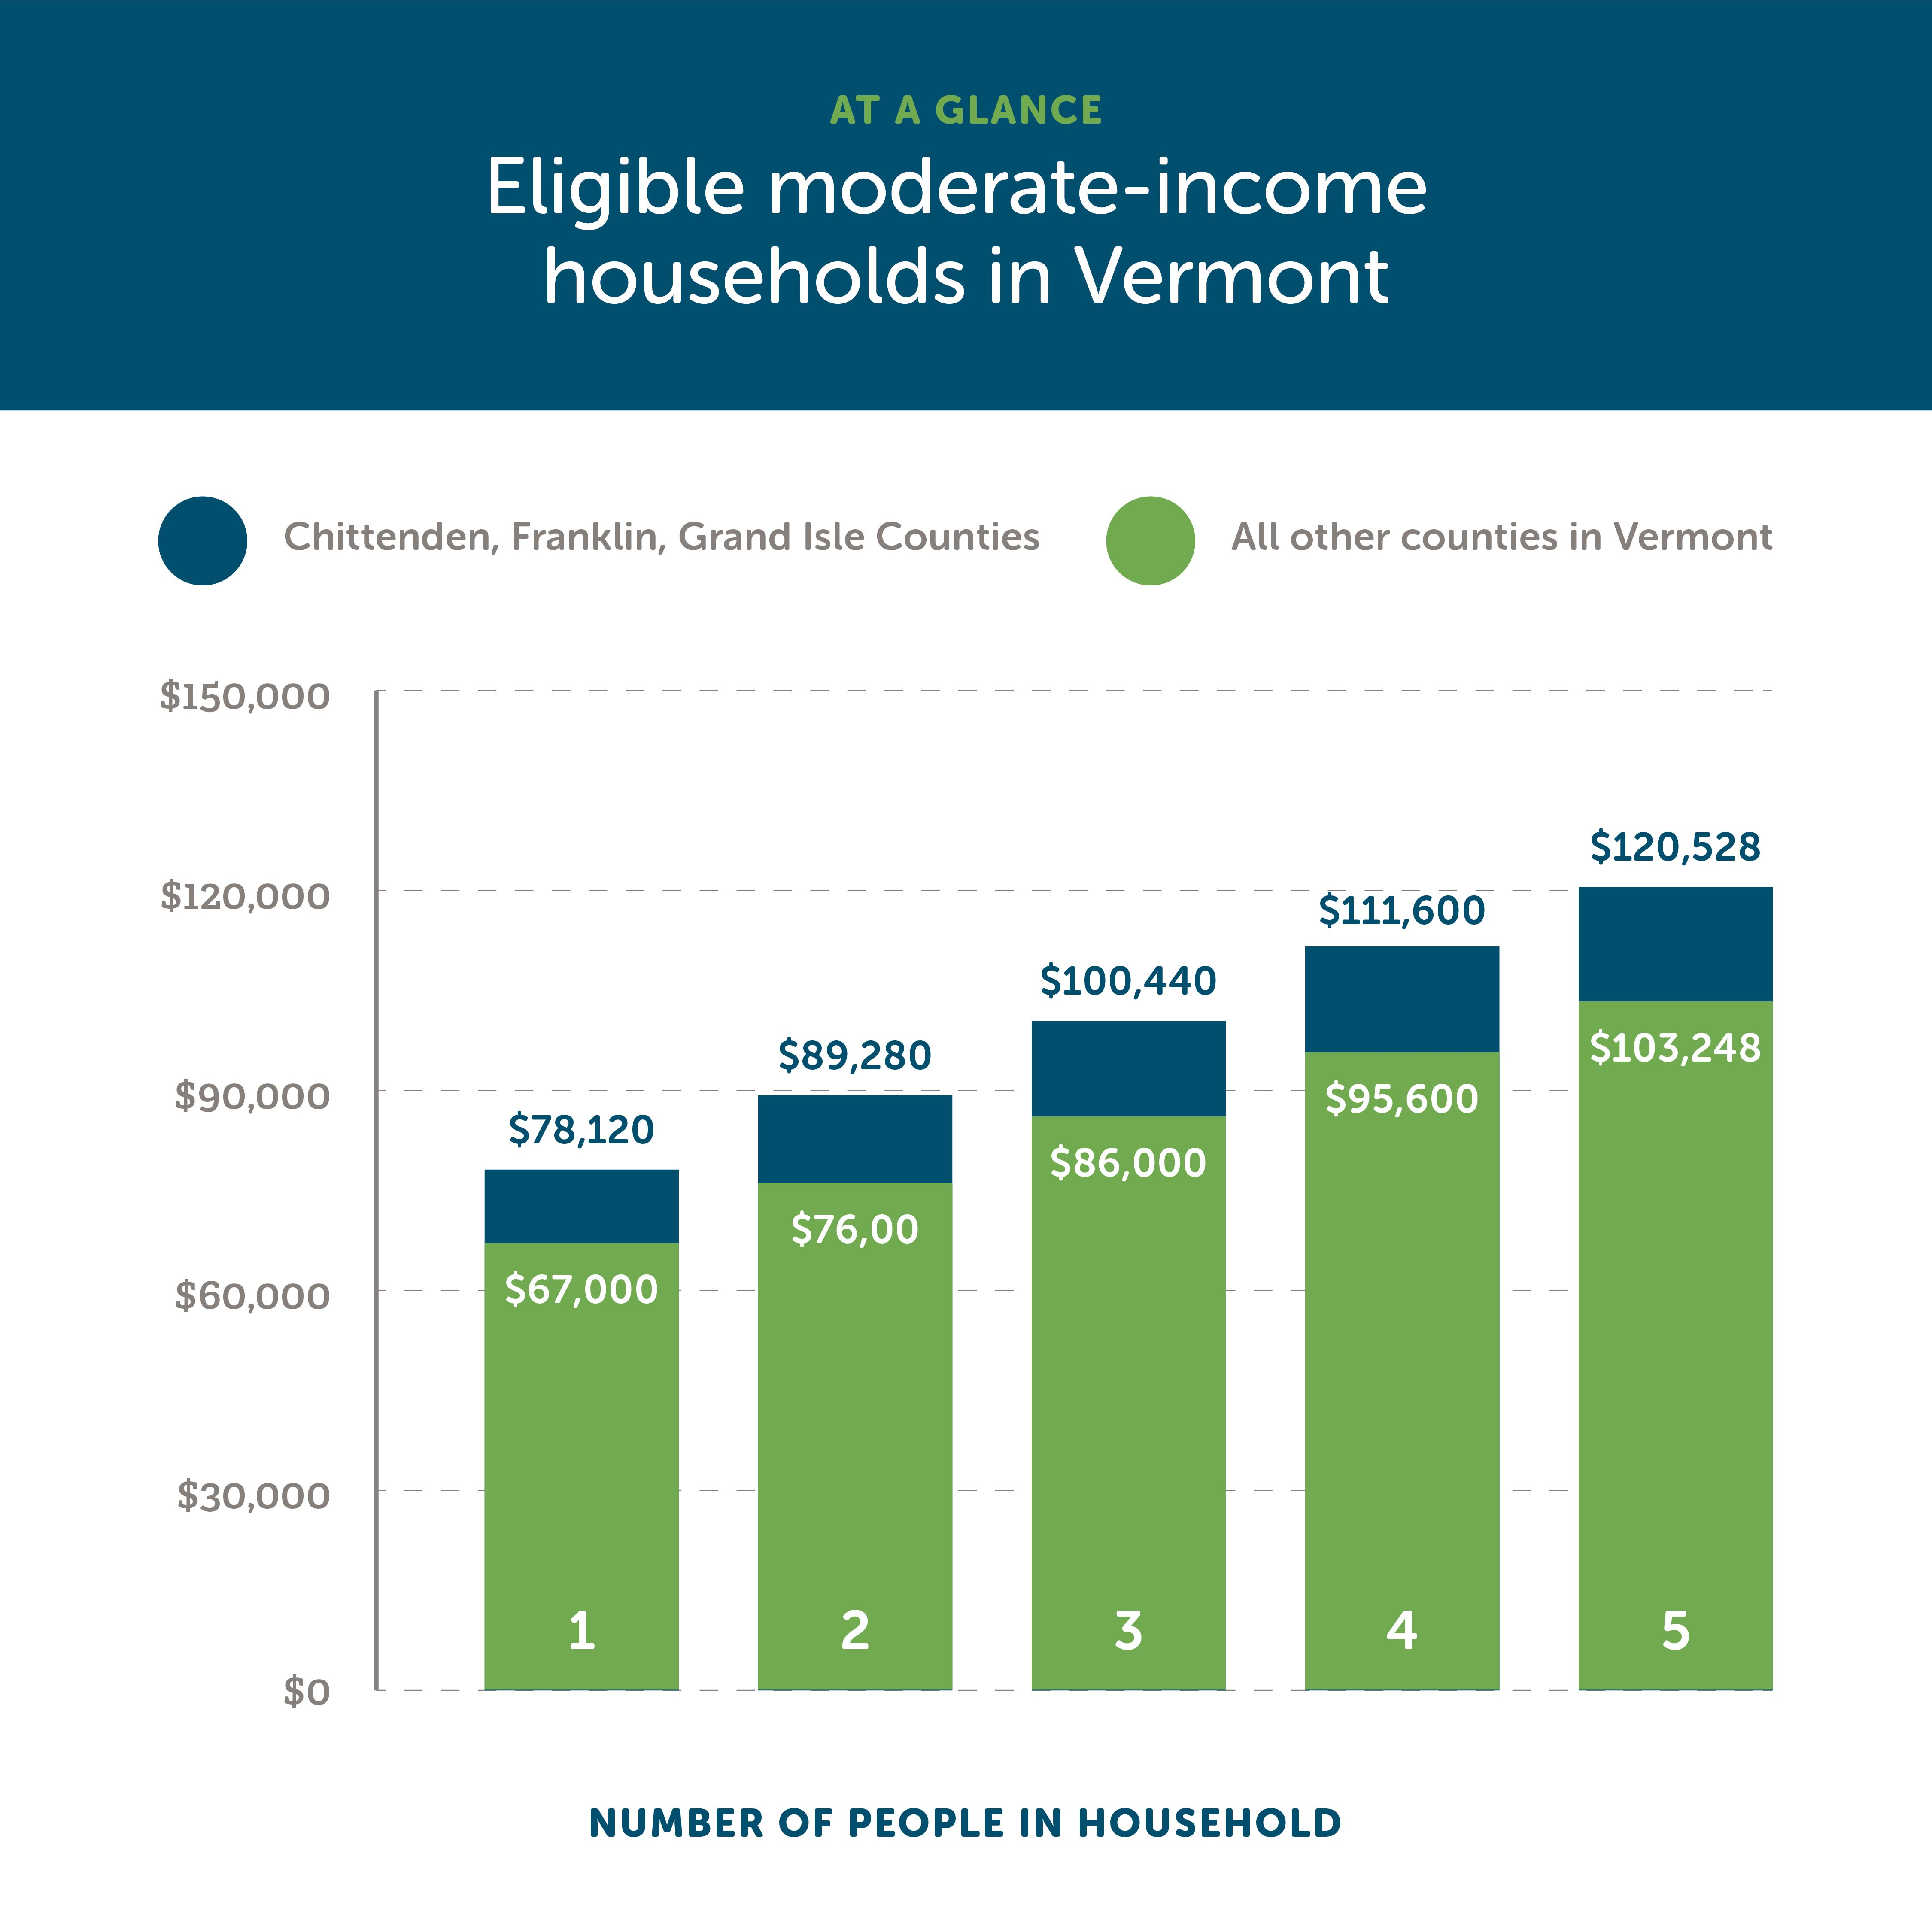 A graph showing eligible moderate-income household incomes in Vermont